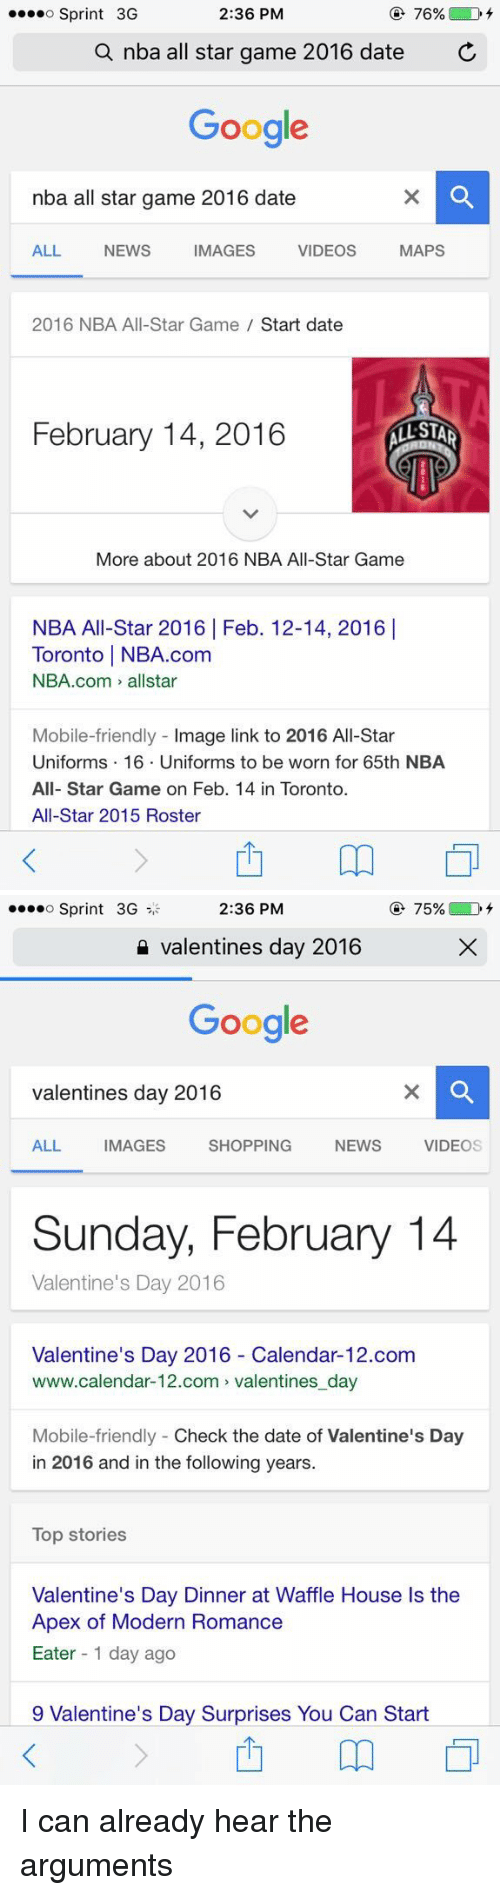 nba all stars: 2:36 PM  76% D  o Sprint 3G  a nba all star game 2016 date  C  Google  nba all star game 2016 date  MAPS  ALL  NEWS IMAGES VIDEOS  2016 NBA All-Star Game Start date  February 14, 2016  STAR  More about 2016 NBA All-Star Game  NBA All-Star 2016 Feb. 12-14, 2016 I  Toronto l NBA.com  NBA.com allstar  Mobile-friendly  mage link to 2016 All-Star  Uniforms 16. Uniforms to be worn for 65th NBA  All-Star Game on Feb. 14 in Toronto.  All-Star 2015 Roster   75%  D  o Sprint 3G  2:36 PM  Valentines day 2016  Google  valentines day 2016  ALL IMAGES SHOPPING NEWs  VIDEO  Sunday, February 14  Valentine's Day 2016  Valentine's Day 2016 Calendar-12.com  www.calendar-12.com valentines day  Mobile-friendly Check the date of Valentine's Day  in 2016 and in the following years.  Top stories  Valentine's Day Dinner at Waffle House ls the  Apex of Modern Romance  Eater 1 day ago  9 Valentine's Day Surprises You Can Start I can already hear the arguments